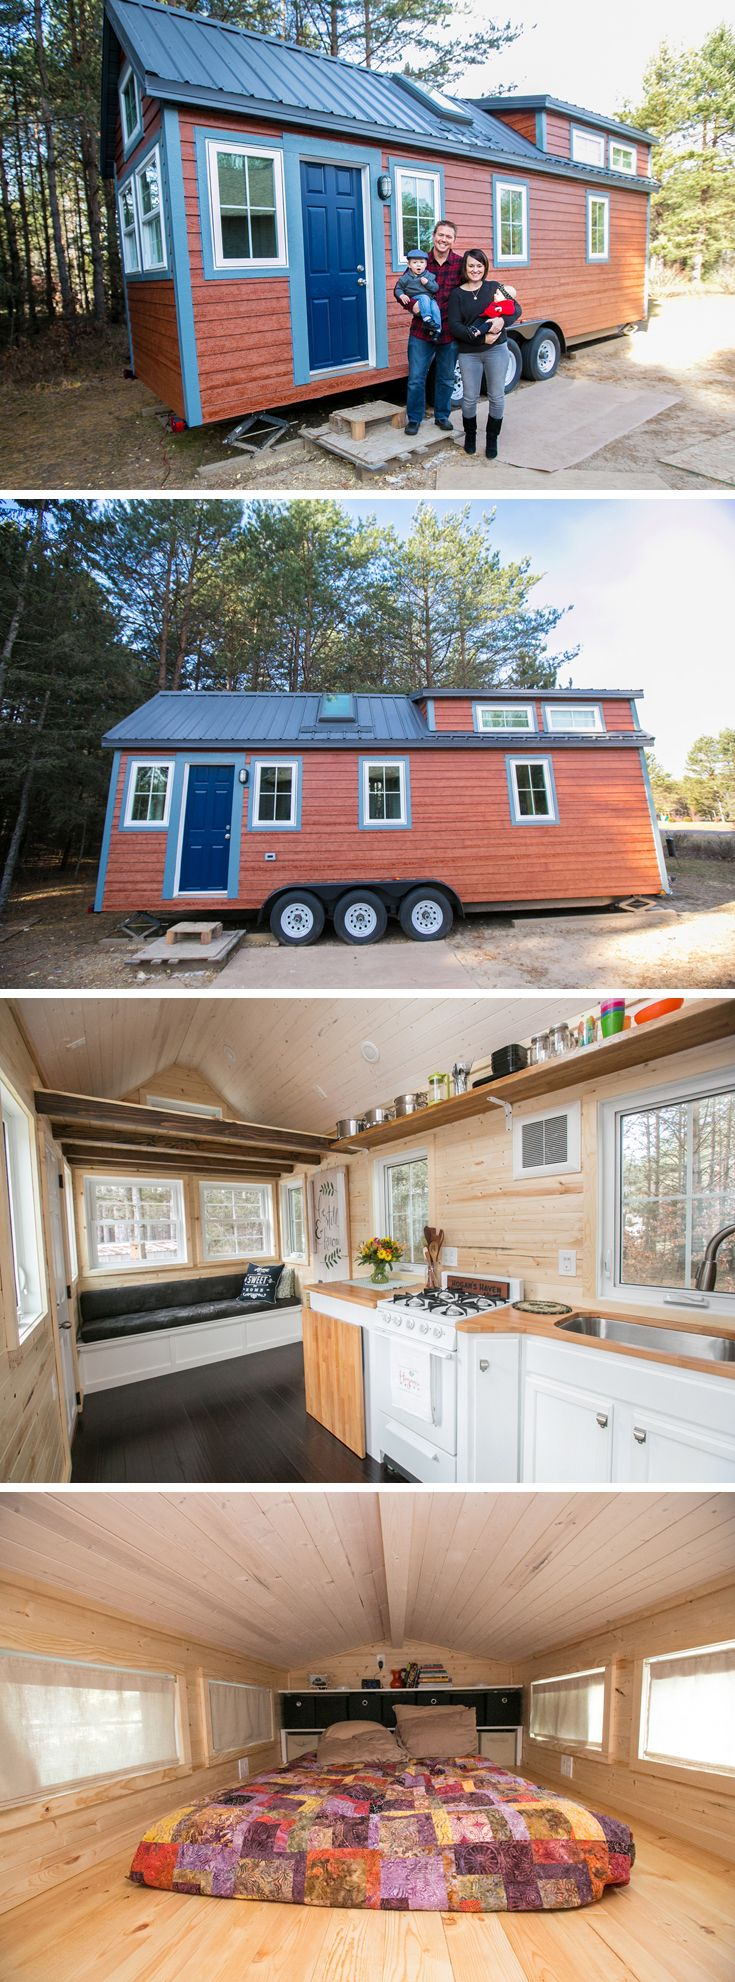 Best 25 Tiny house listings ideas on Pinterest Building a tiny